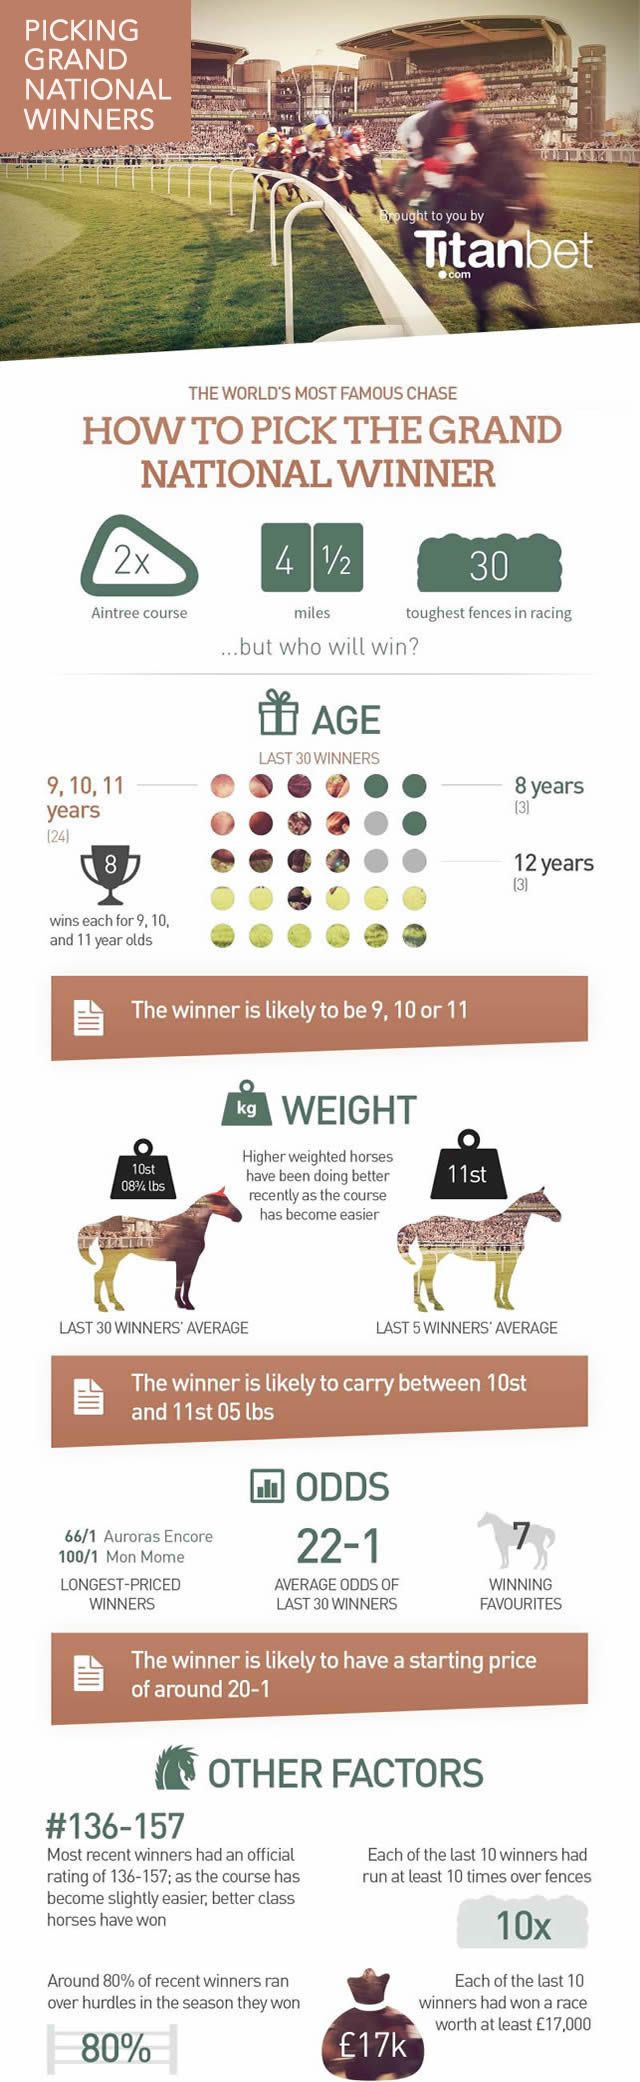 Proven tips to help you pick a Grand National winner. How to pick a Grand National winner based on a horses age, weight and their odds. #GrandNational #HorseRacing